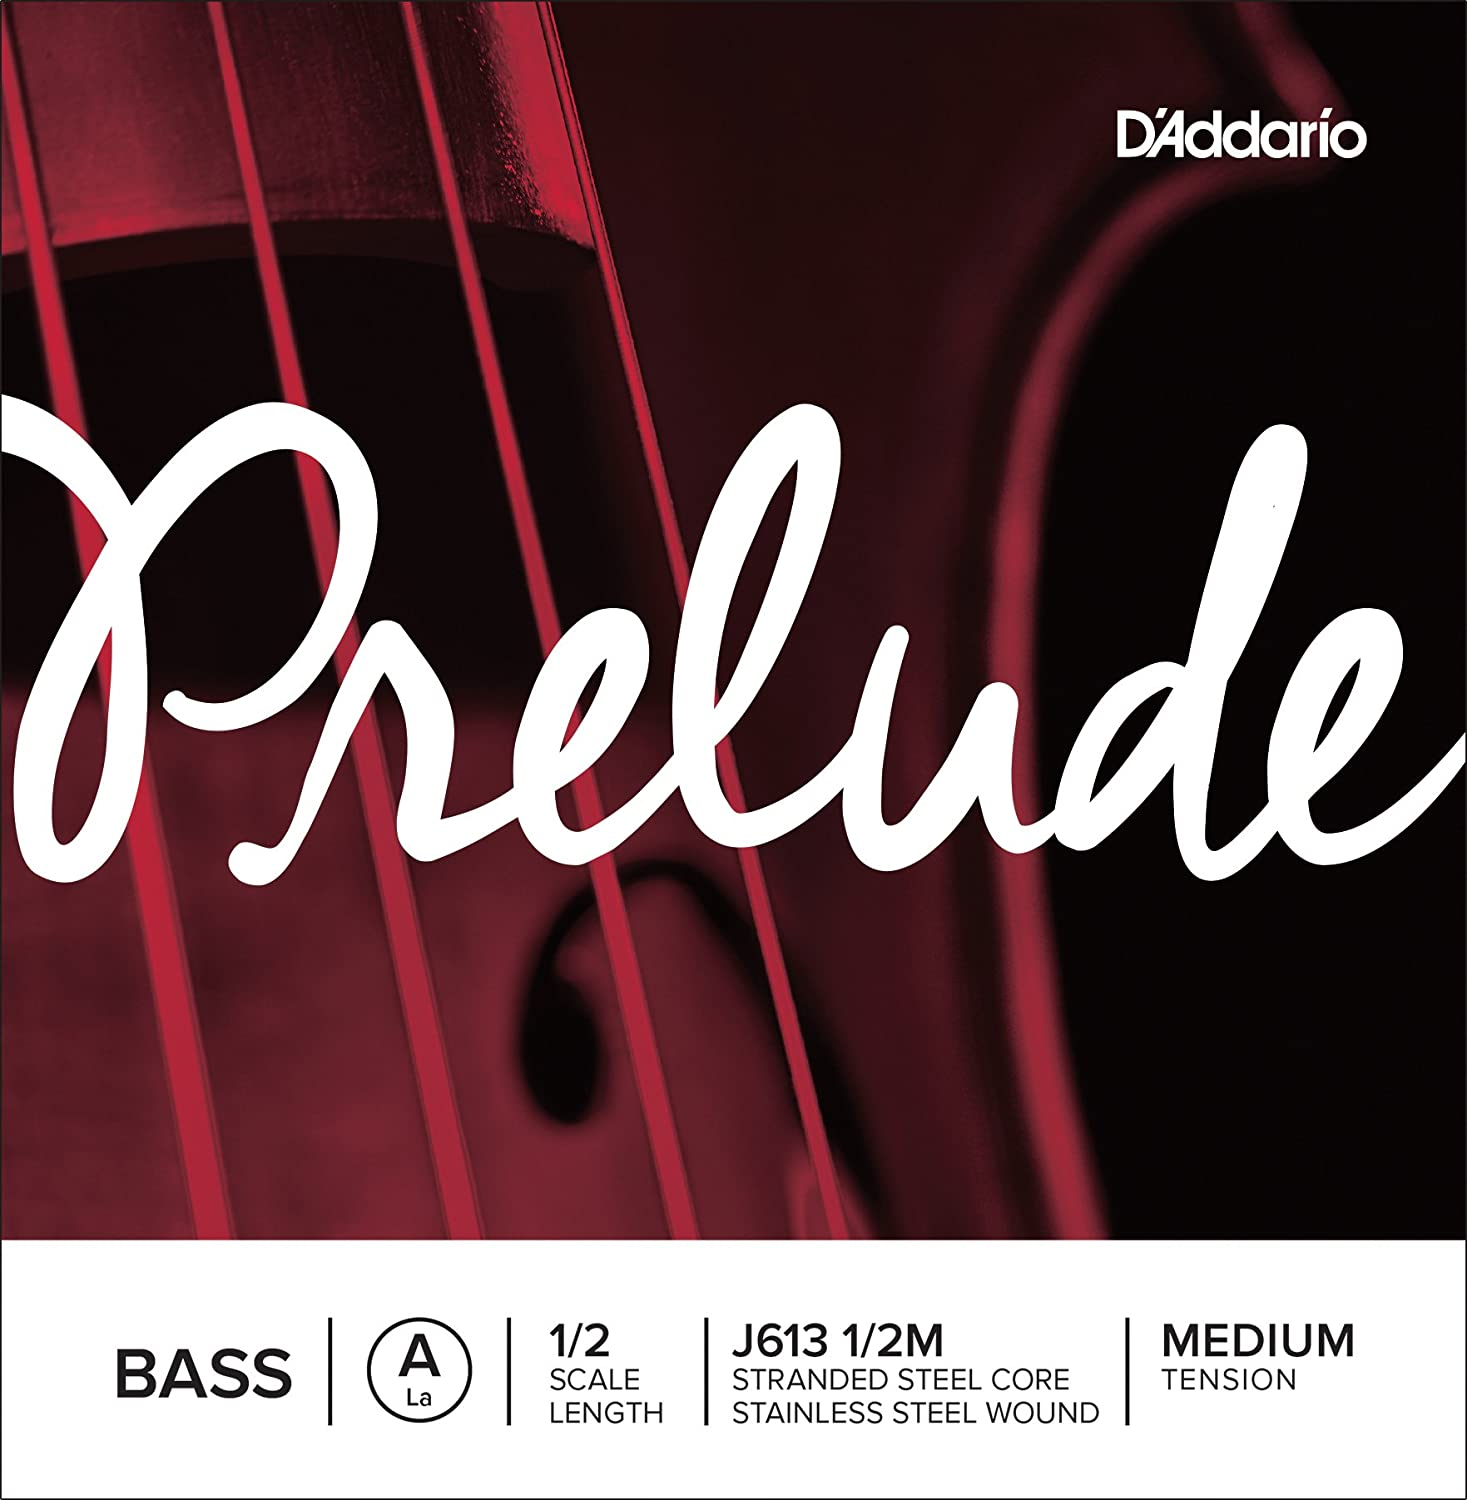 D'Addario Prelude Bass Single D String, 3/4 Scale, Medium Tension D' Addario J612 3/4M